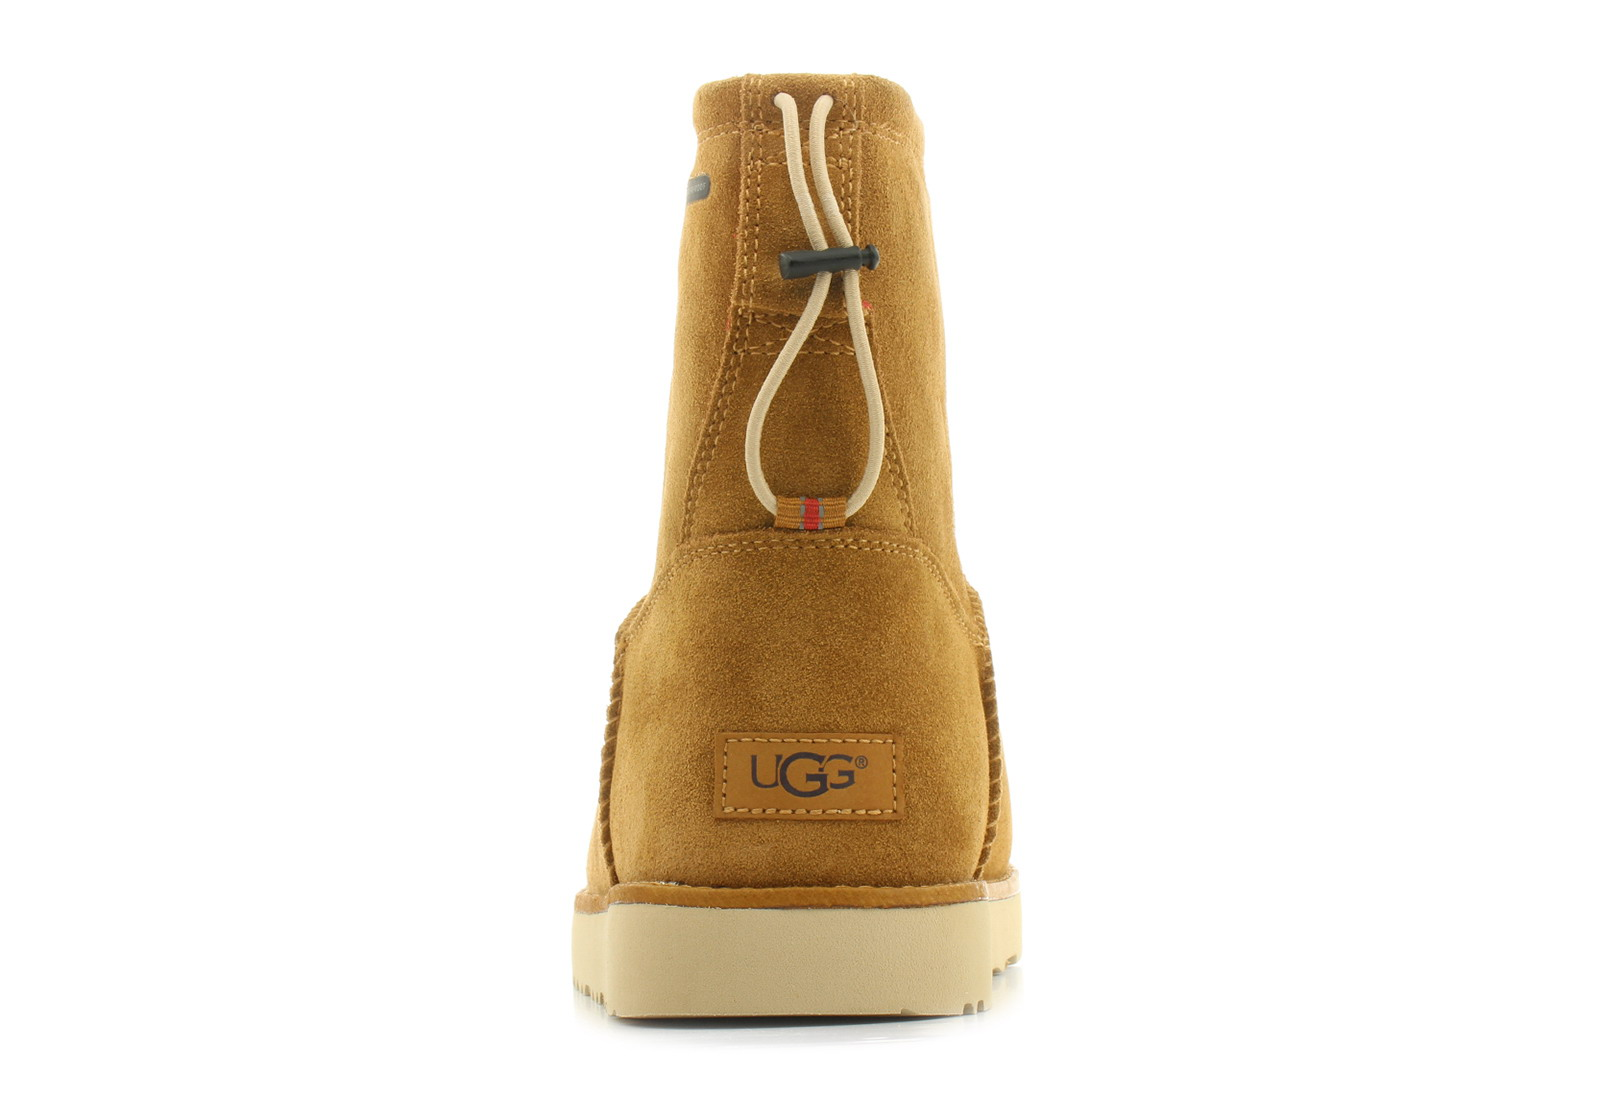 Ugg Boots - Classic Toggle Waterproof - 1018454-che - Online shop for  sneakers, shoes and boots